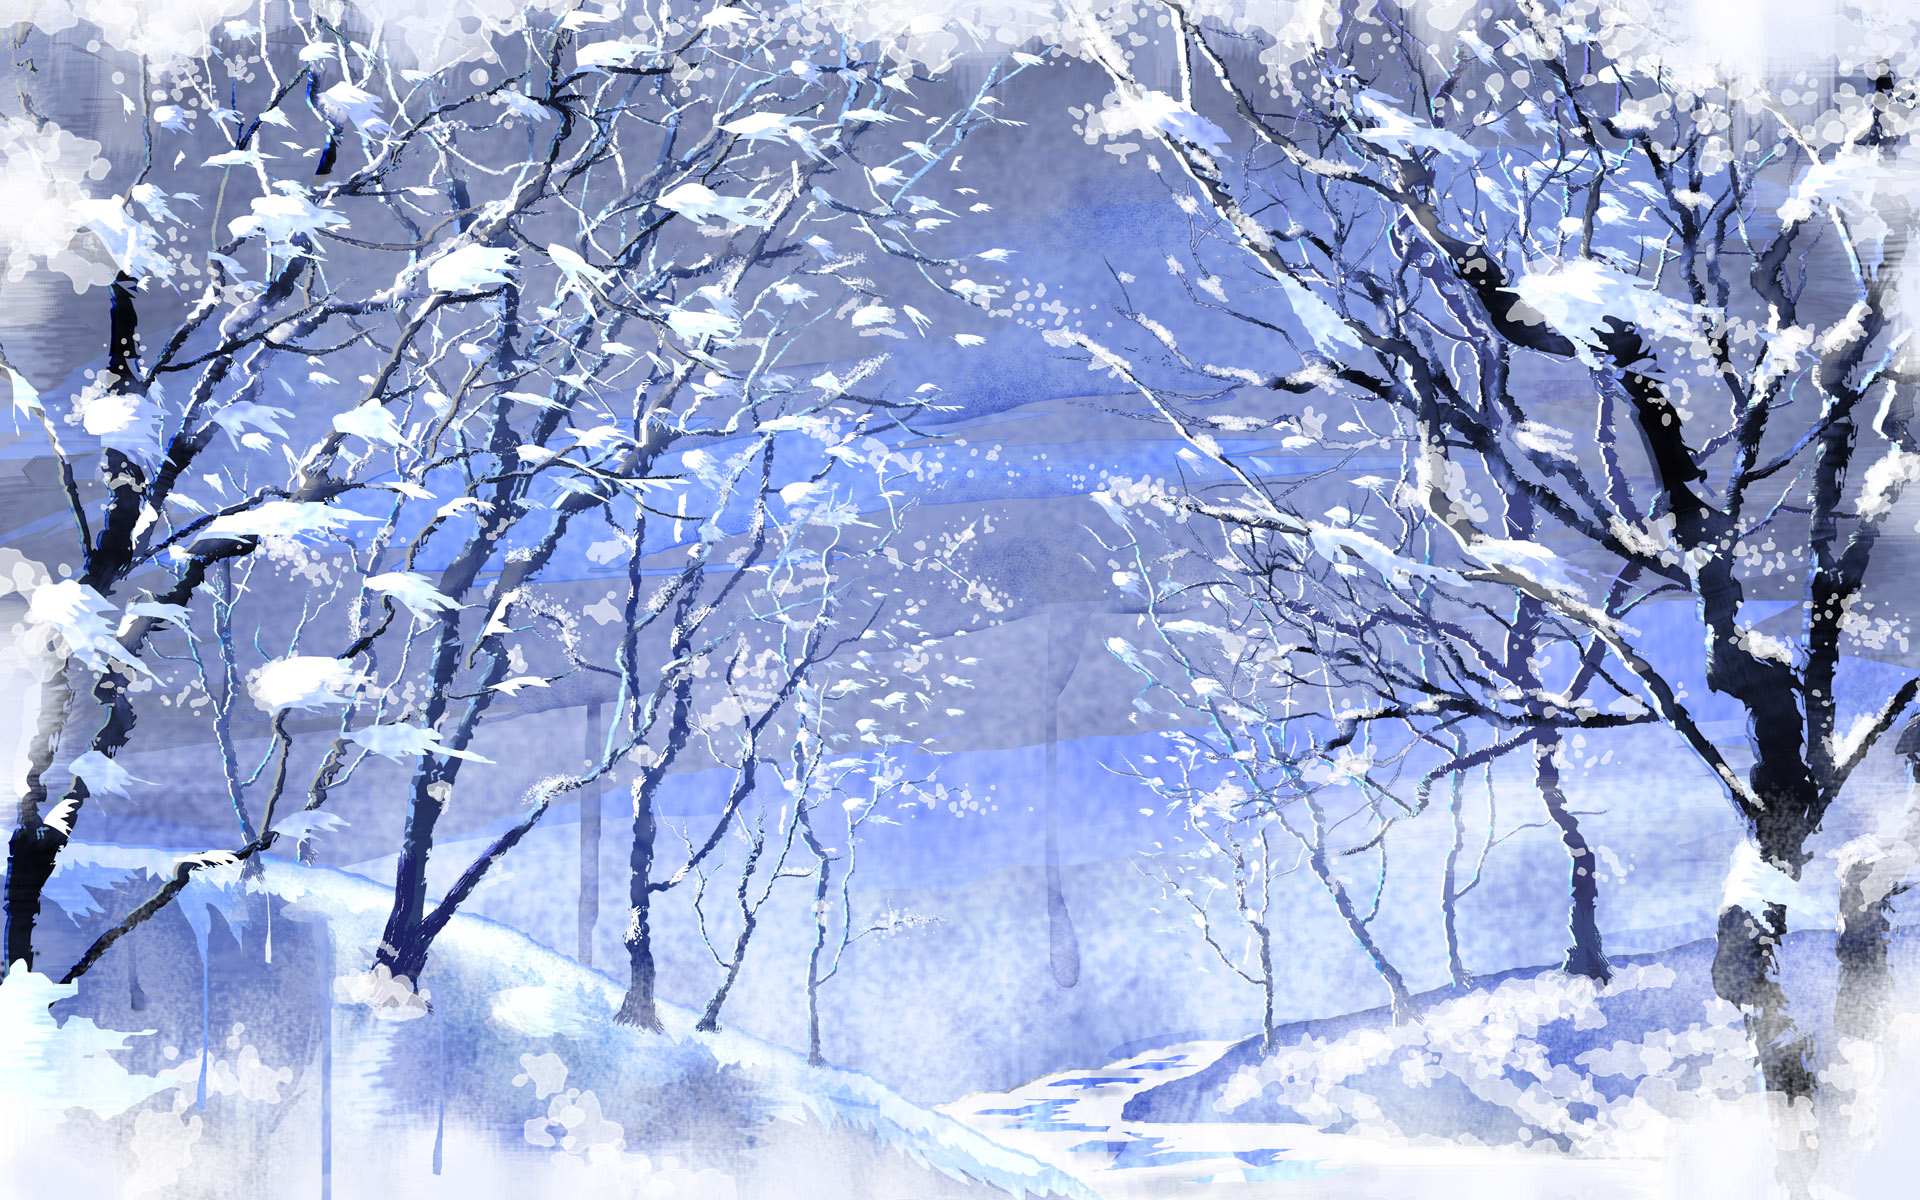 Winter Scene Wallpaper Winter Scene Computer Wallpaper 1920x1200